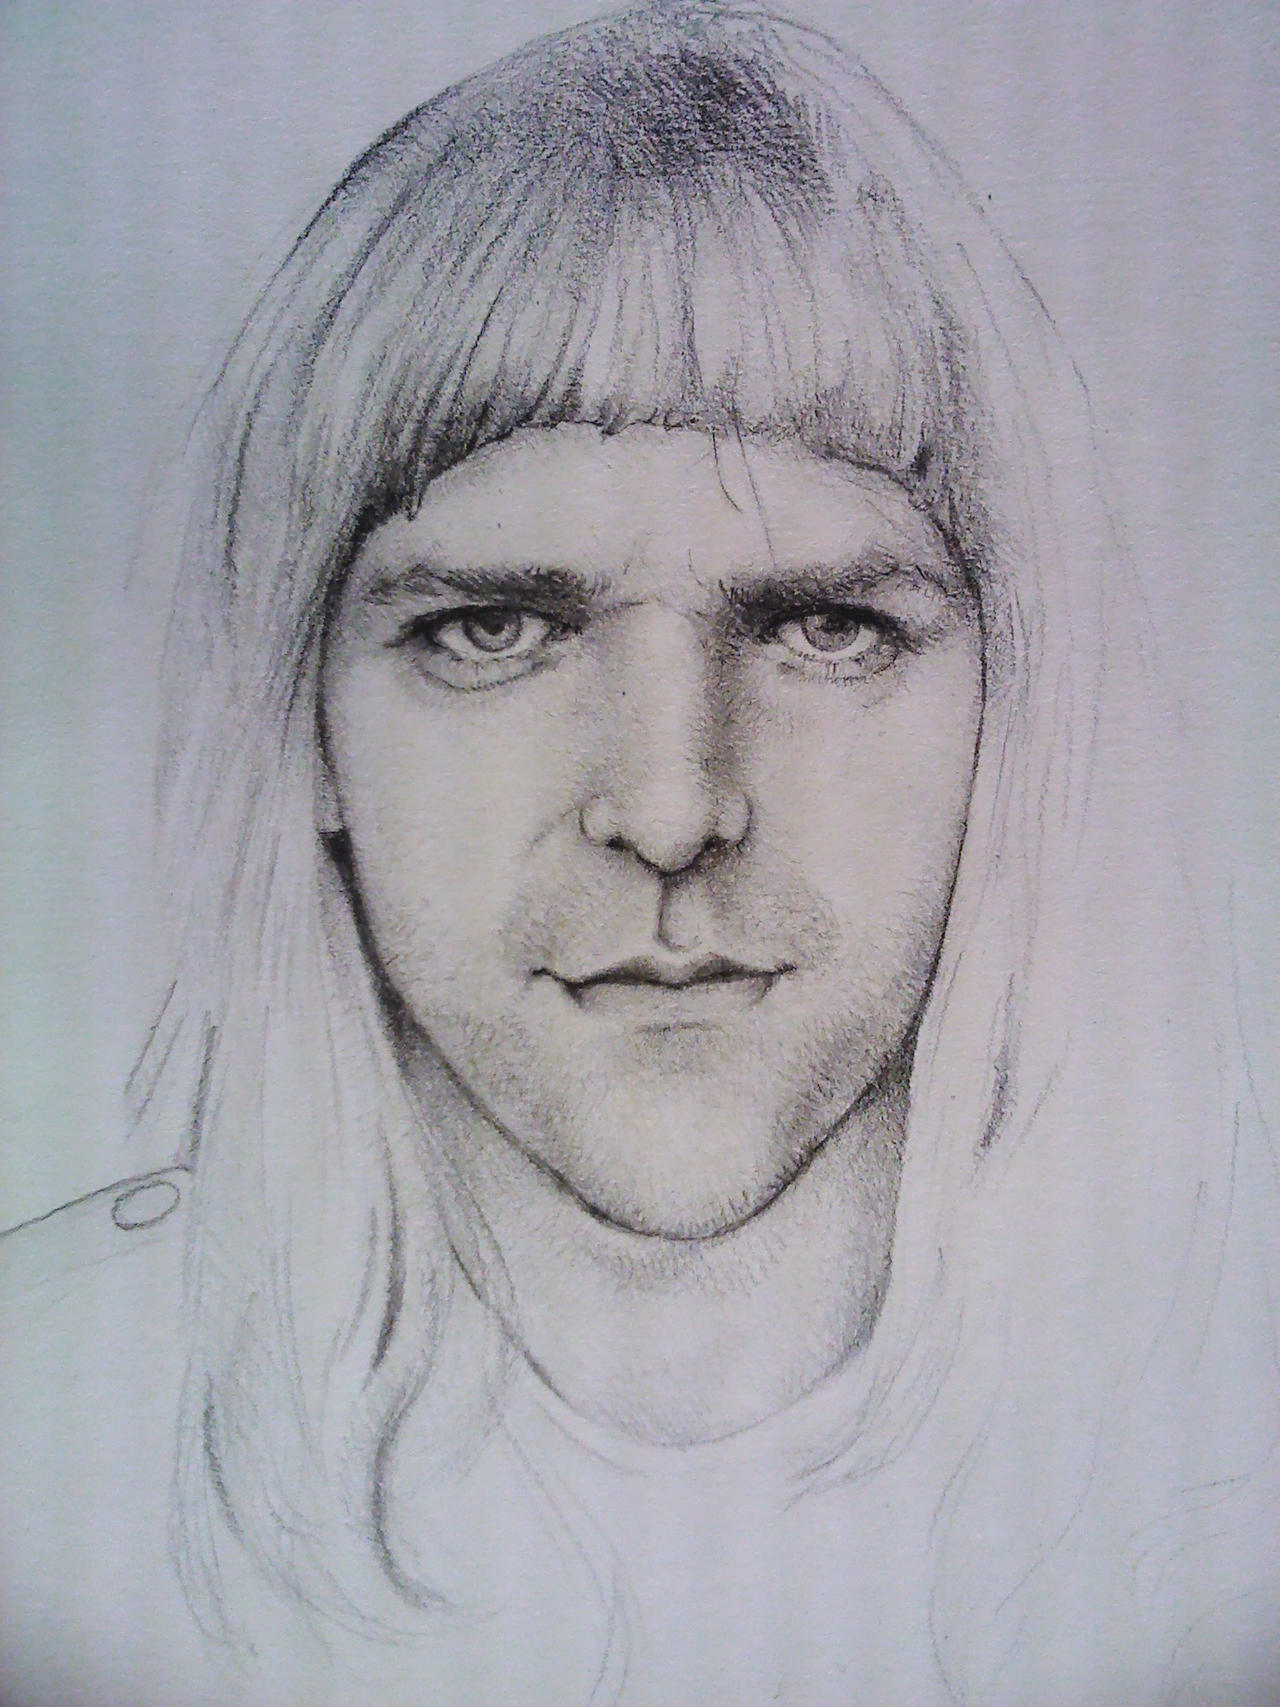 I Drew Another Really Bad Portrait Of Ariel Pink By 8032